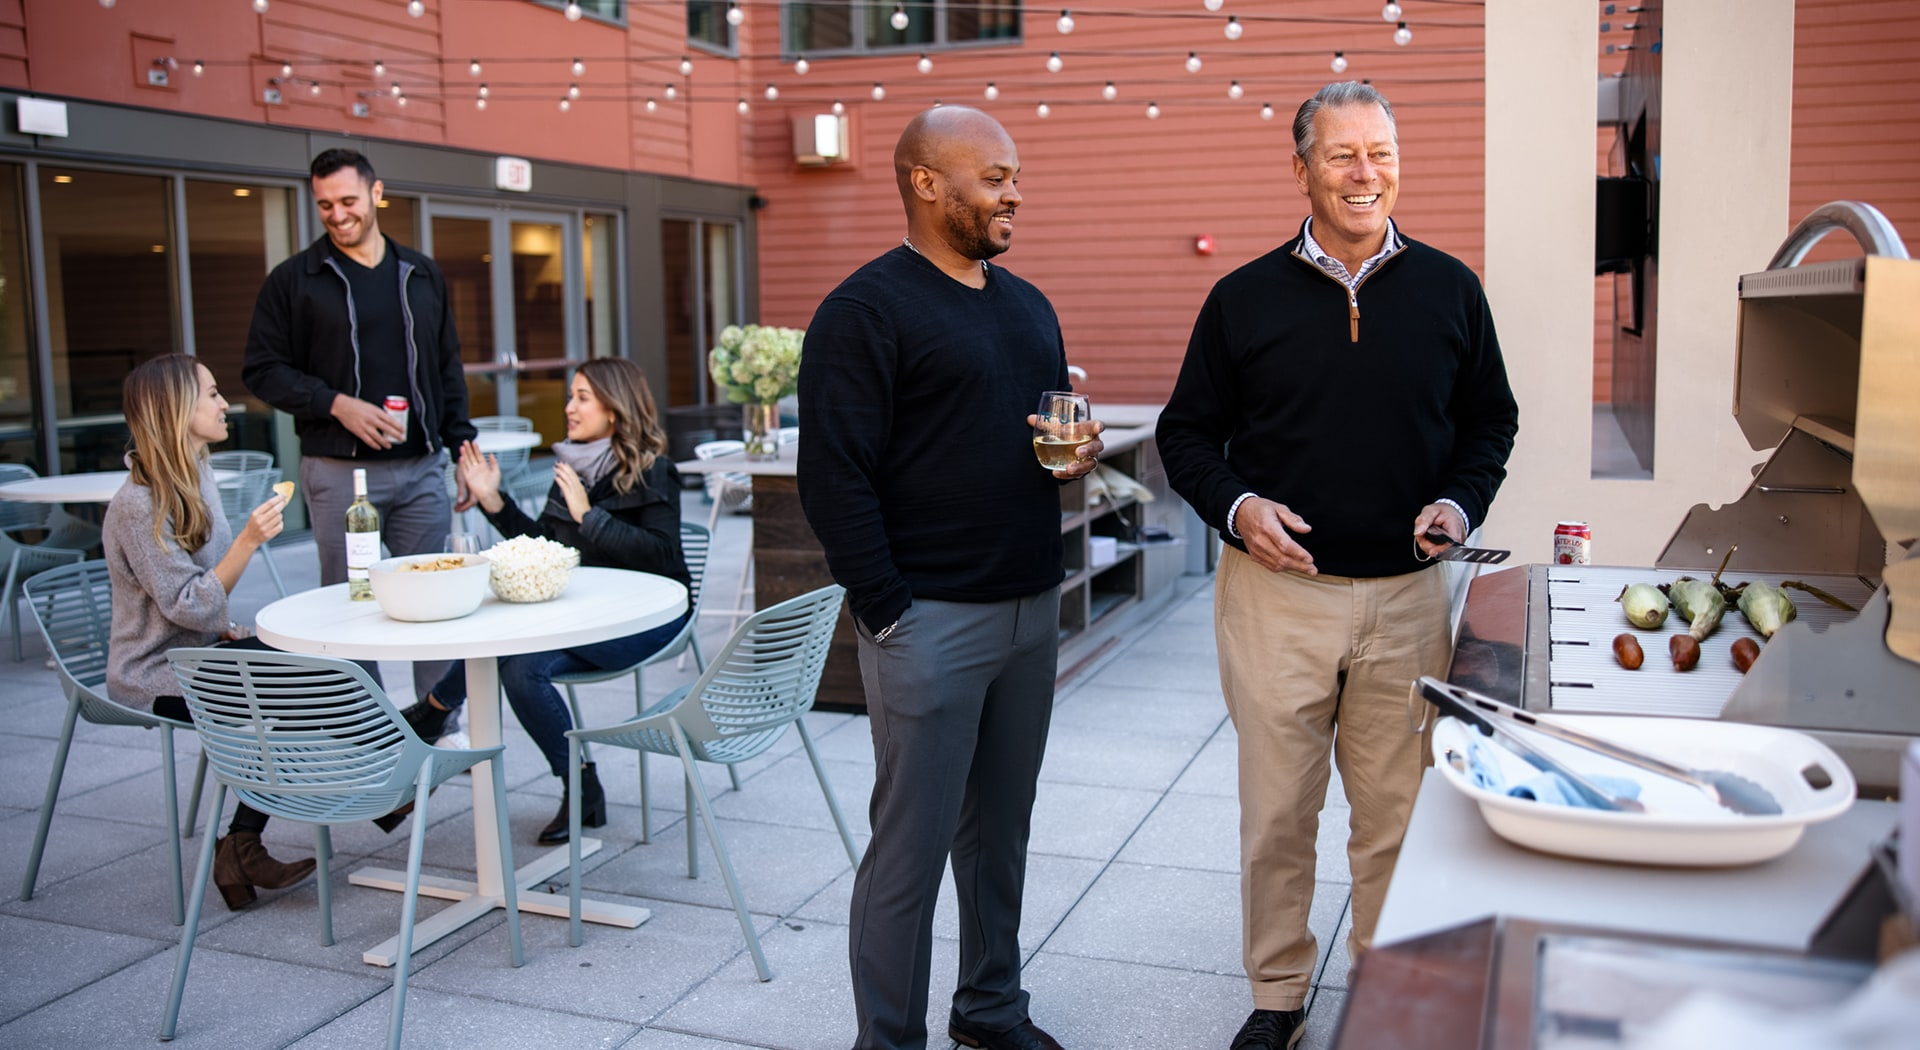 From morning yoga to a roof deck BBQ, here's a perfect Saturday at TRIO Newton